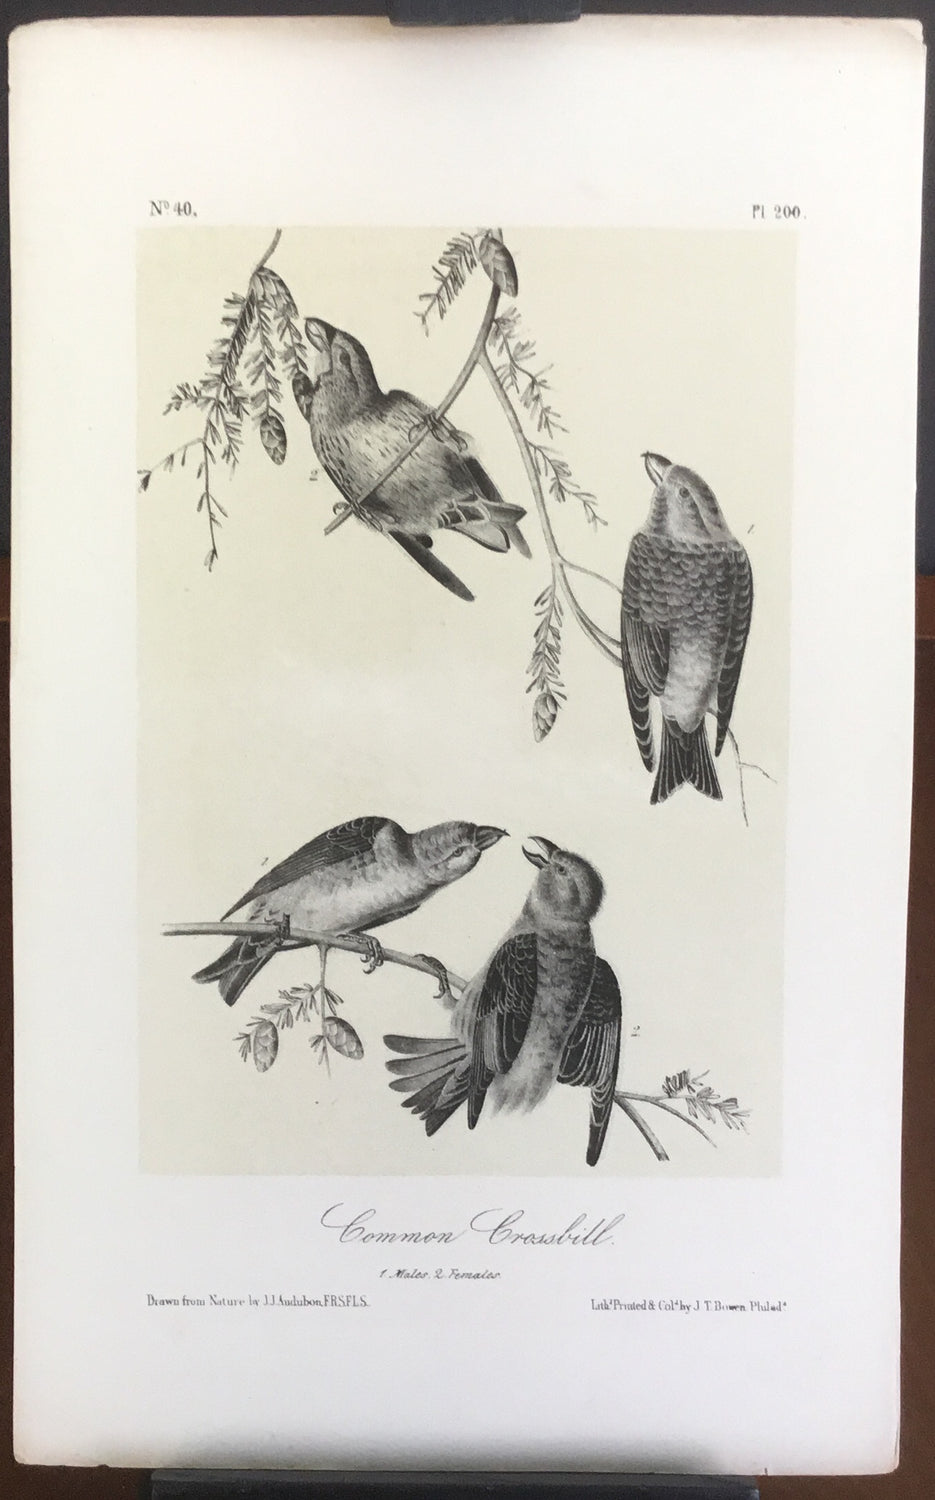 Audubon Octavo Common Crossbill, plate 200, uncolored test sheet, 7 x 11